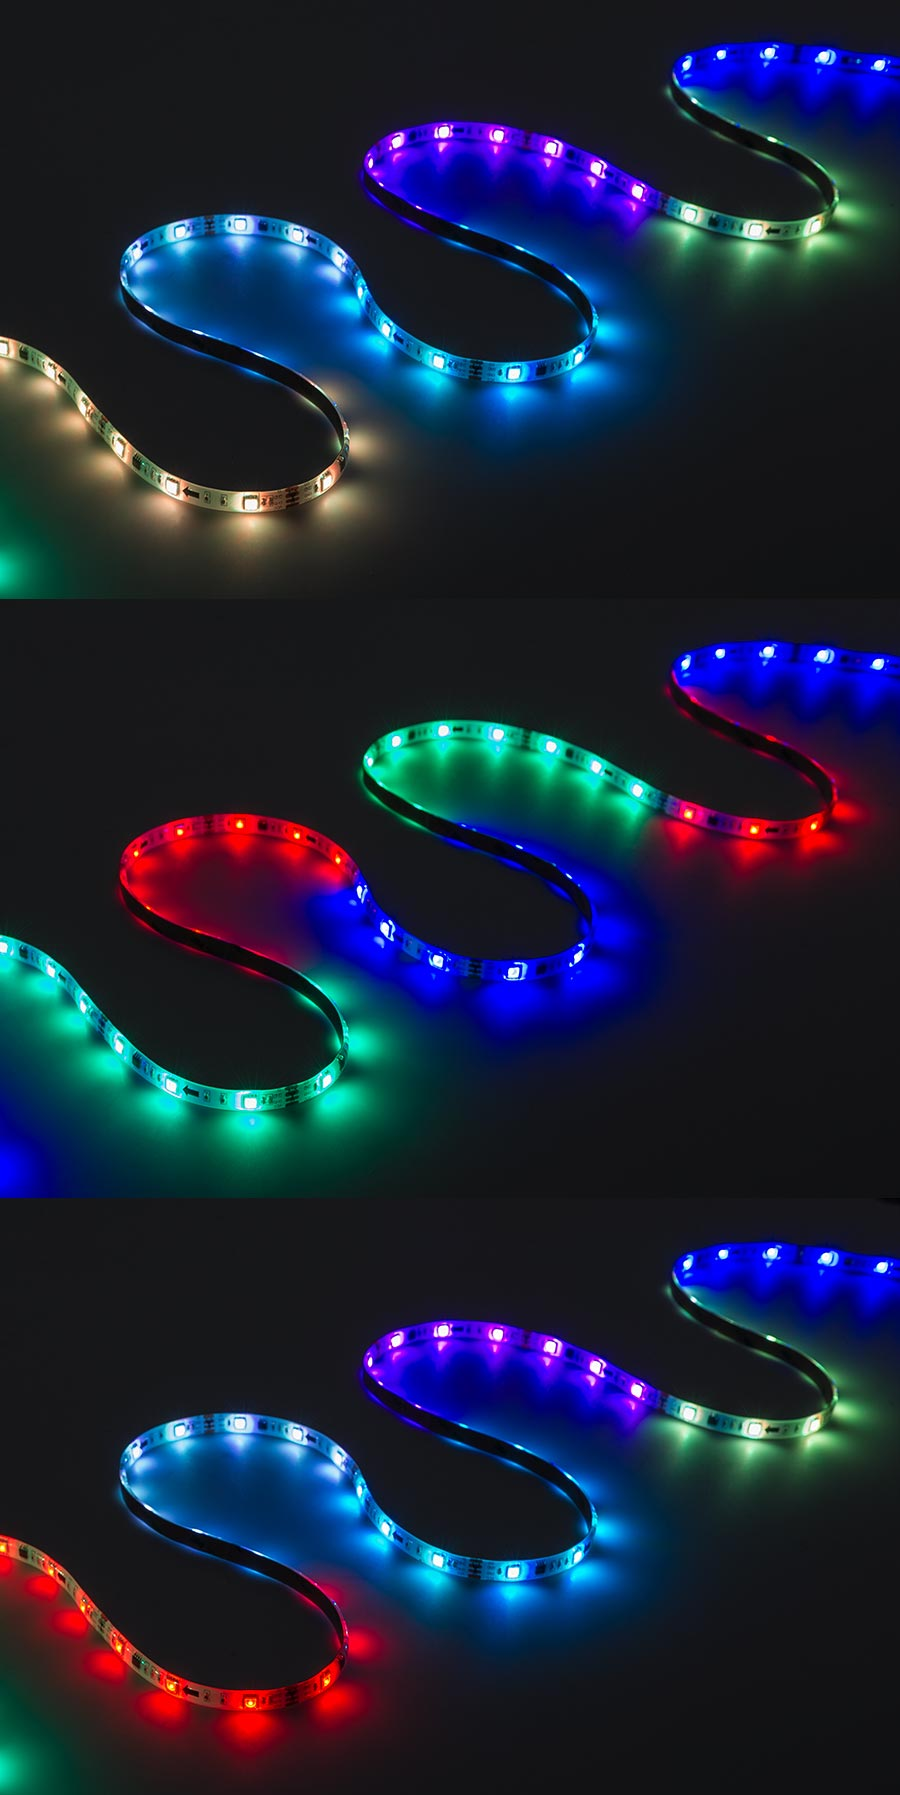 Rgb led strip light kit color chasing 12v led tape light 22 color chasing rgb led light strip kit flexible led tape light with 9 smd ledsft 3 chip rgb smd led 5050 on showing multiple color dreamcolor modes aloadofball Images